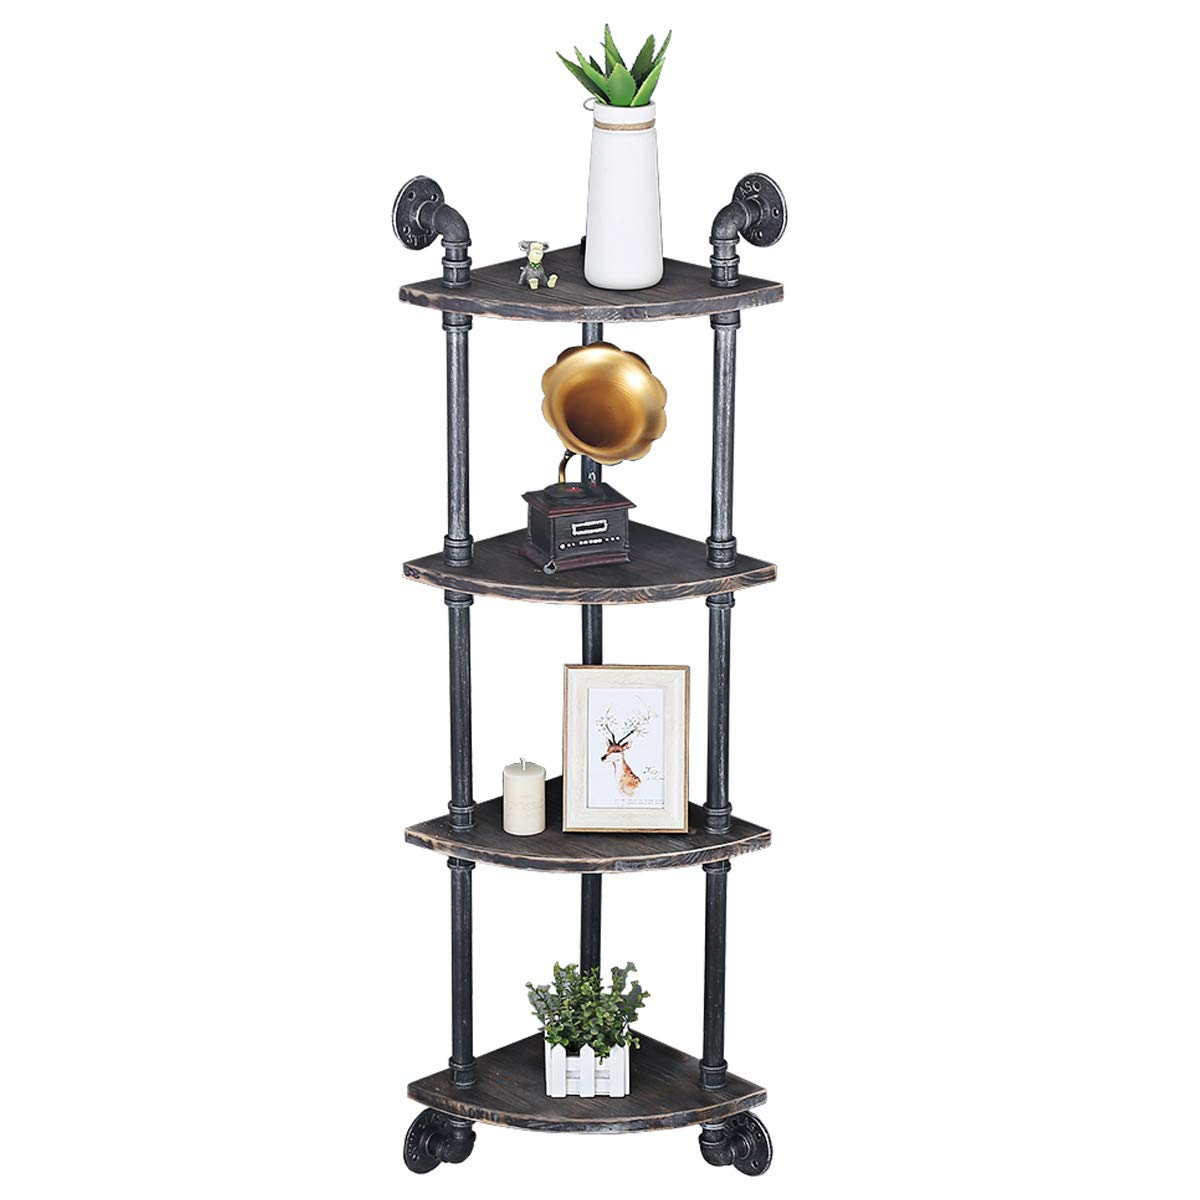 FOF FRIEND OF FAMILY 4 Tier Industrial Retro Wall Mounted Corner Pipe Shelf, Pipe Wooden Bookshelf and Bookcases Furniture